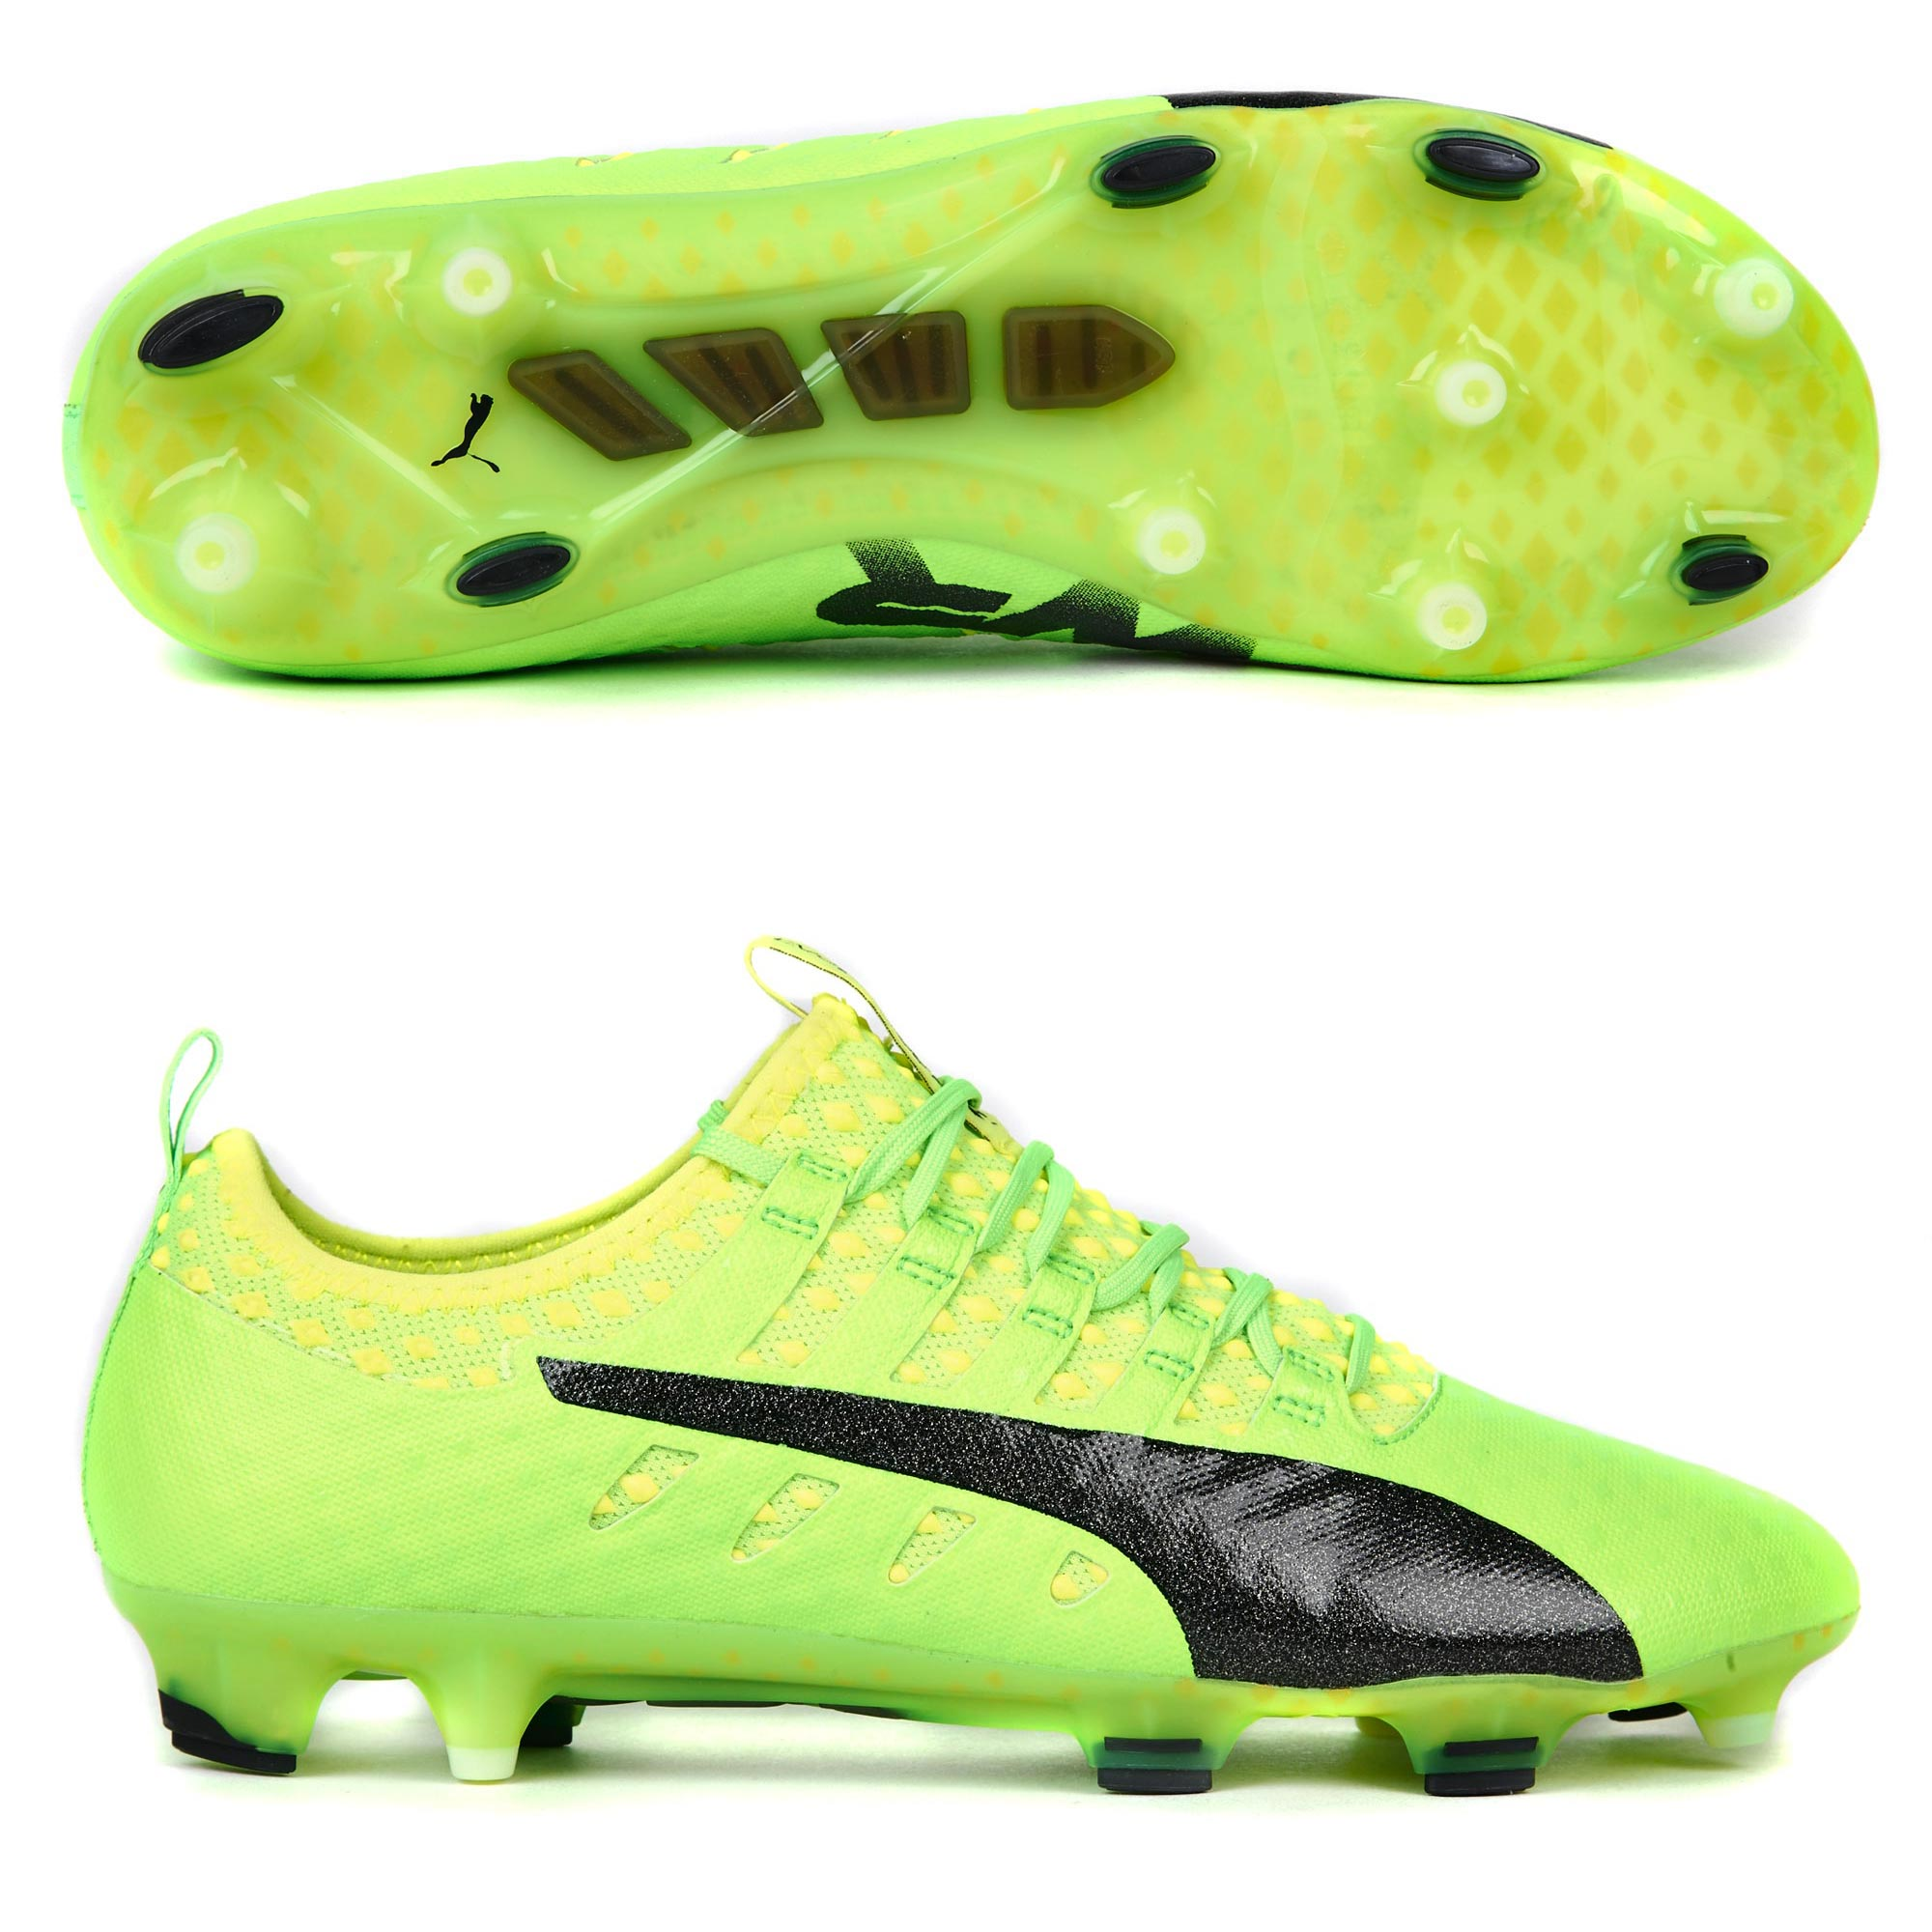 Puma evoPOWER Vigor 1 FG Green Gecko/Black/S